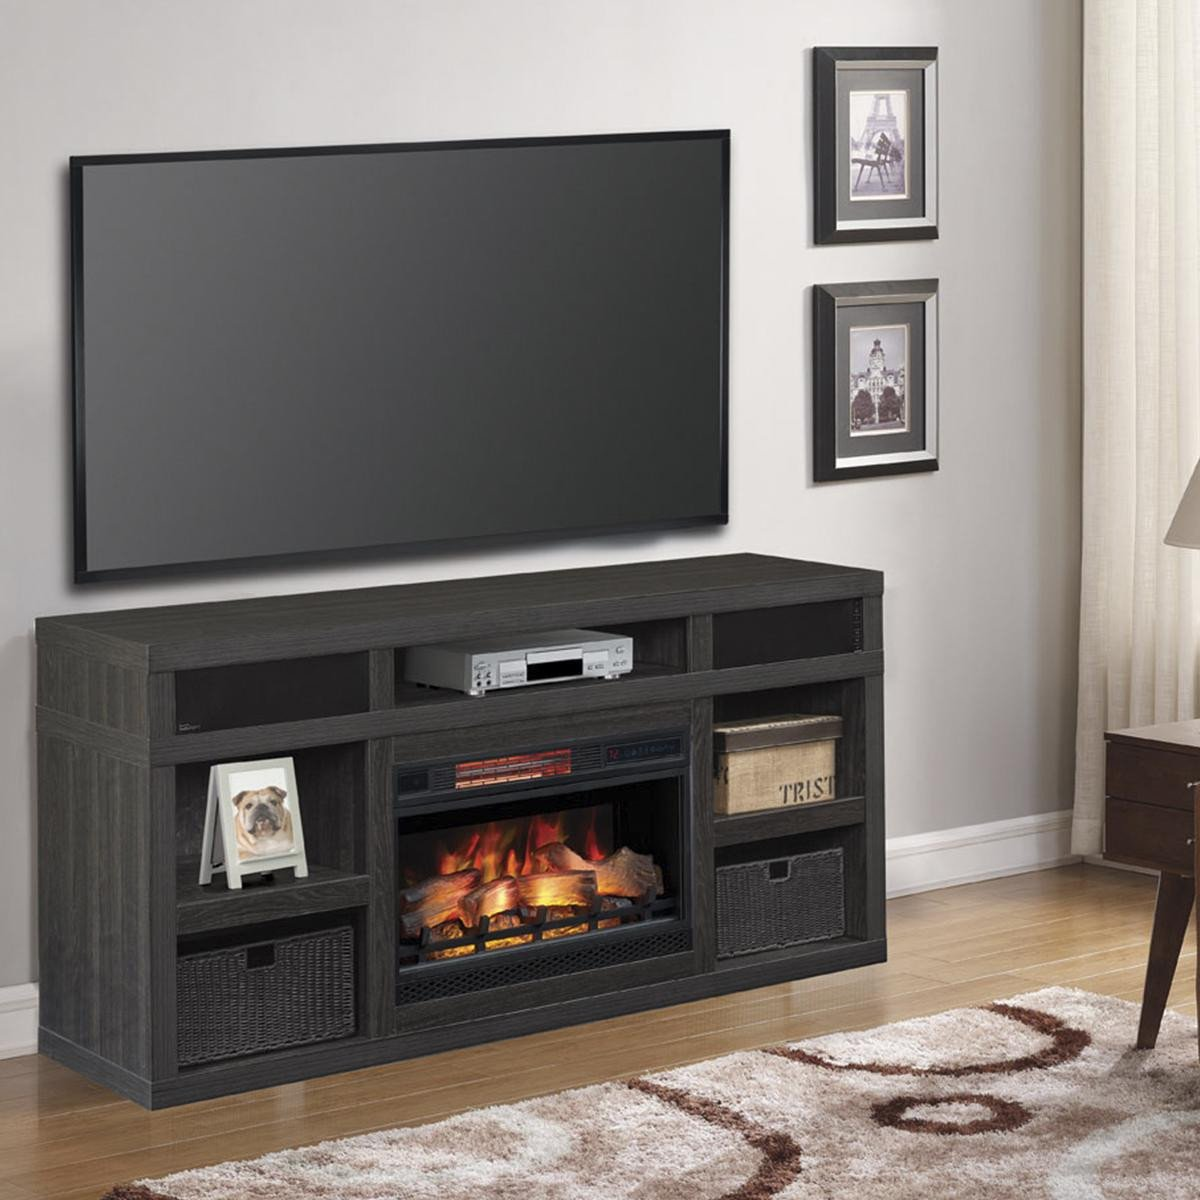 "Small Tv for Bedroom New Fabio Flames Greatlin 64"" Tv Stand In Black Walnut"